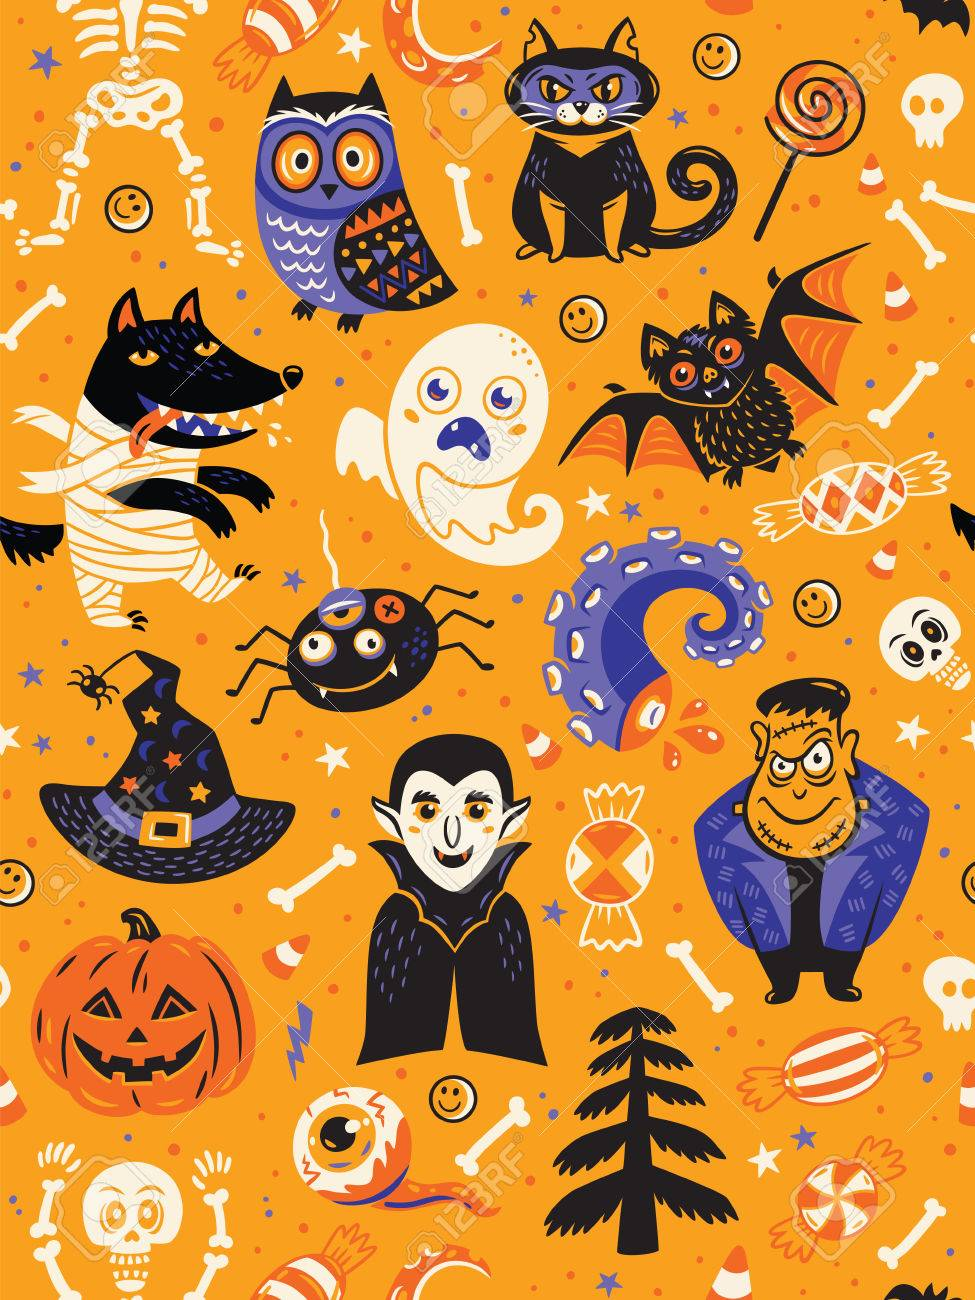 Cute Cartoon Halloween Pictures : cartoon, halloween, pictures, Cartoon, Halloween, Seamless, Pattern, Yellow, Background..., Royalty, Cliparts,, Vectors,, Stock, Illustration., Image, 62911233.